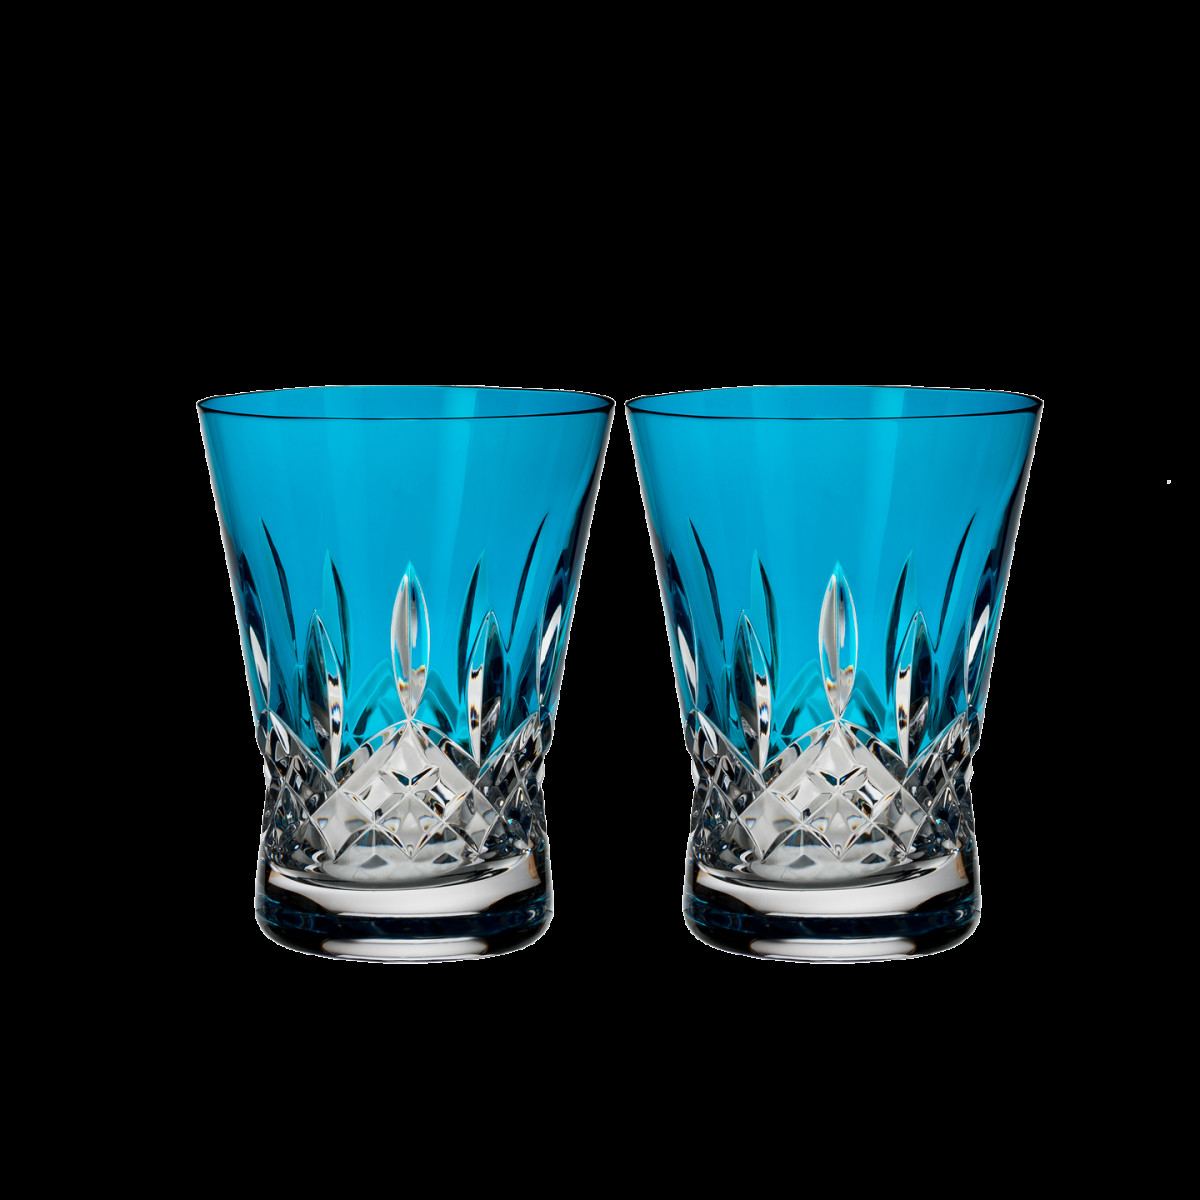 waterford vases discontinued of lismore pops aqua double old fashioned pair discontinued in lismore pops aqua double old fashioned pair discontinued